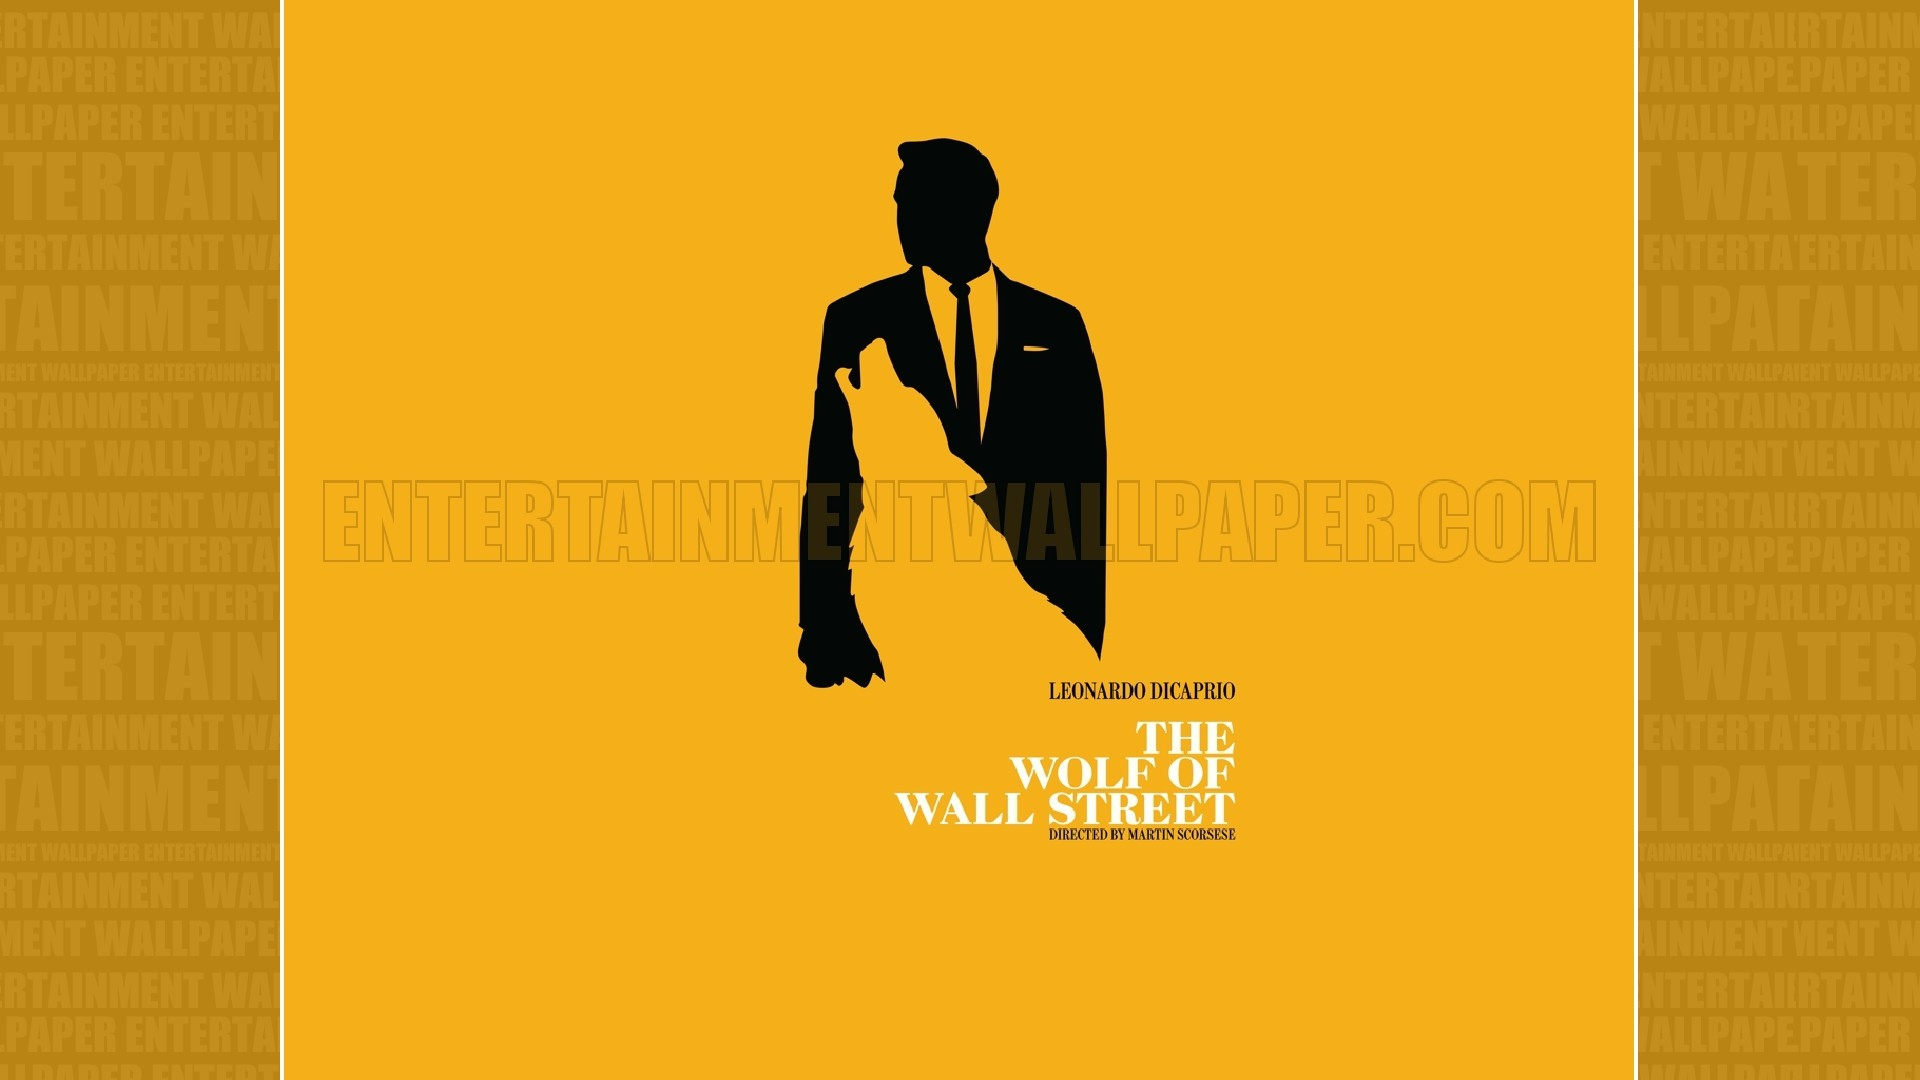 1920x1080 The Wolf of Wall Street Wallpaper - Original size, download now.